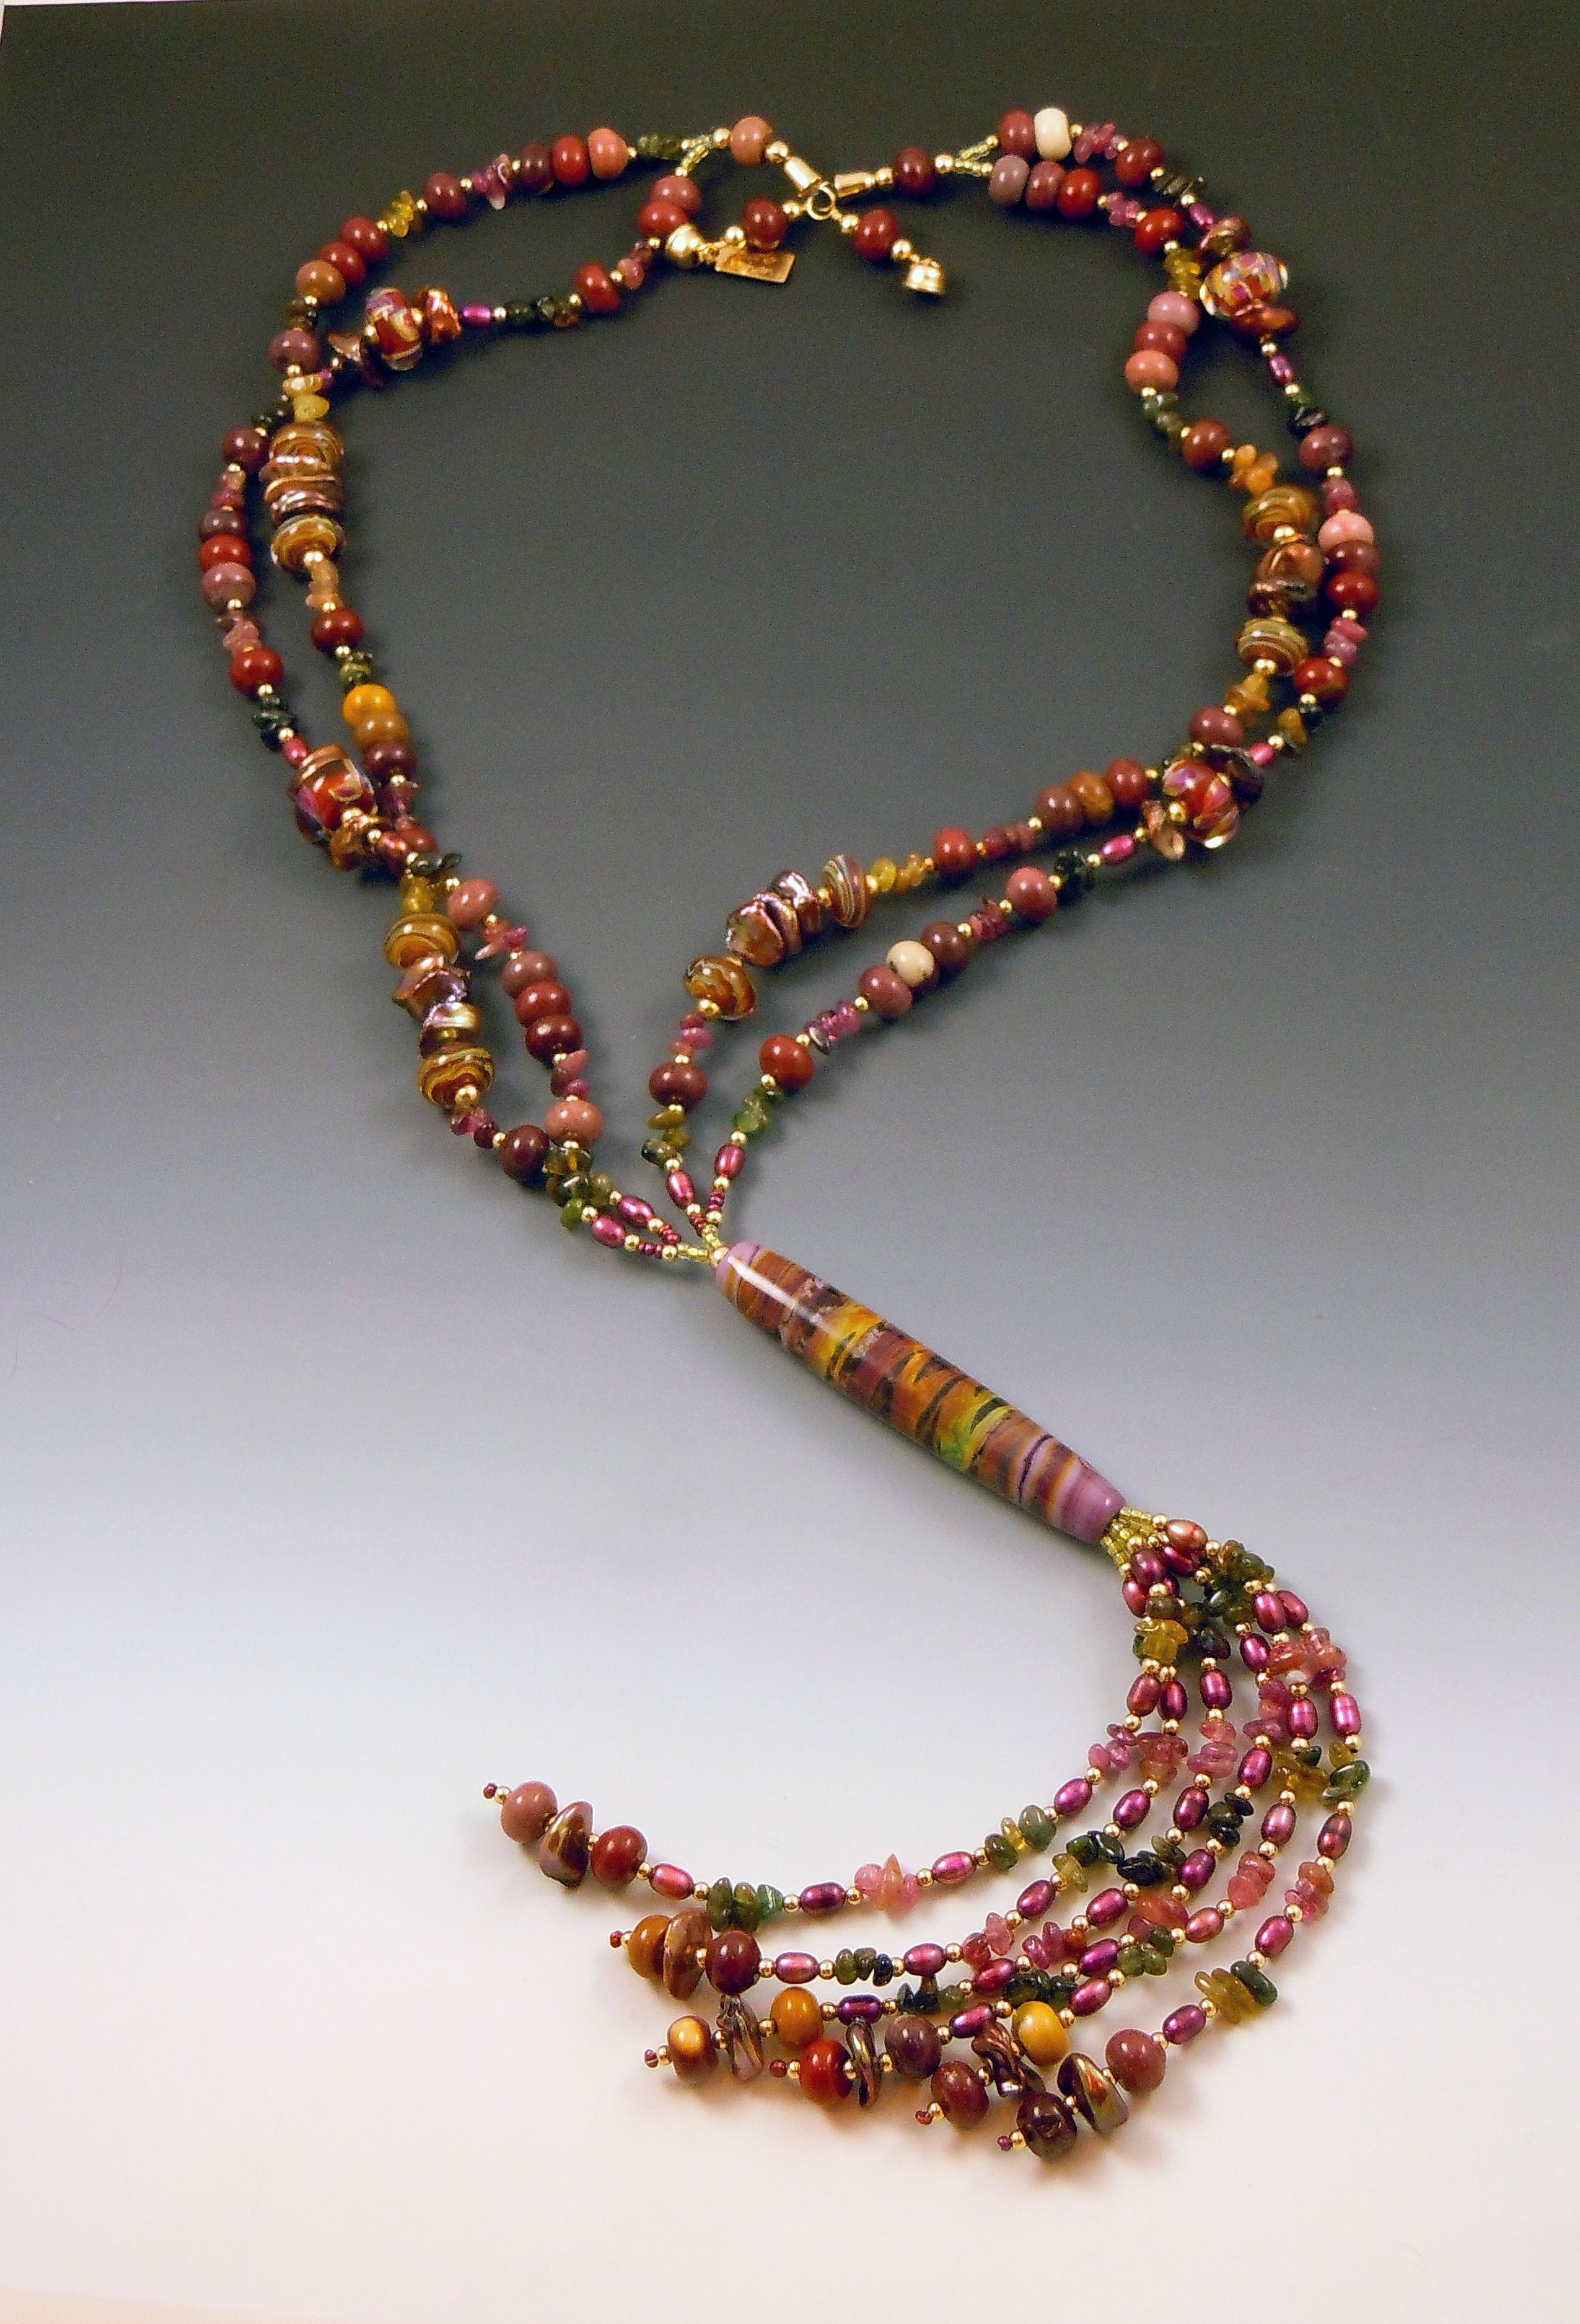 Tourmaline Sunset by Barb Cohan-Saavedra.  Tourmalines, jasper, freshwater pearls, GF beads and findings, and lampworked glass focal bead and accents.